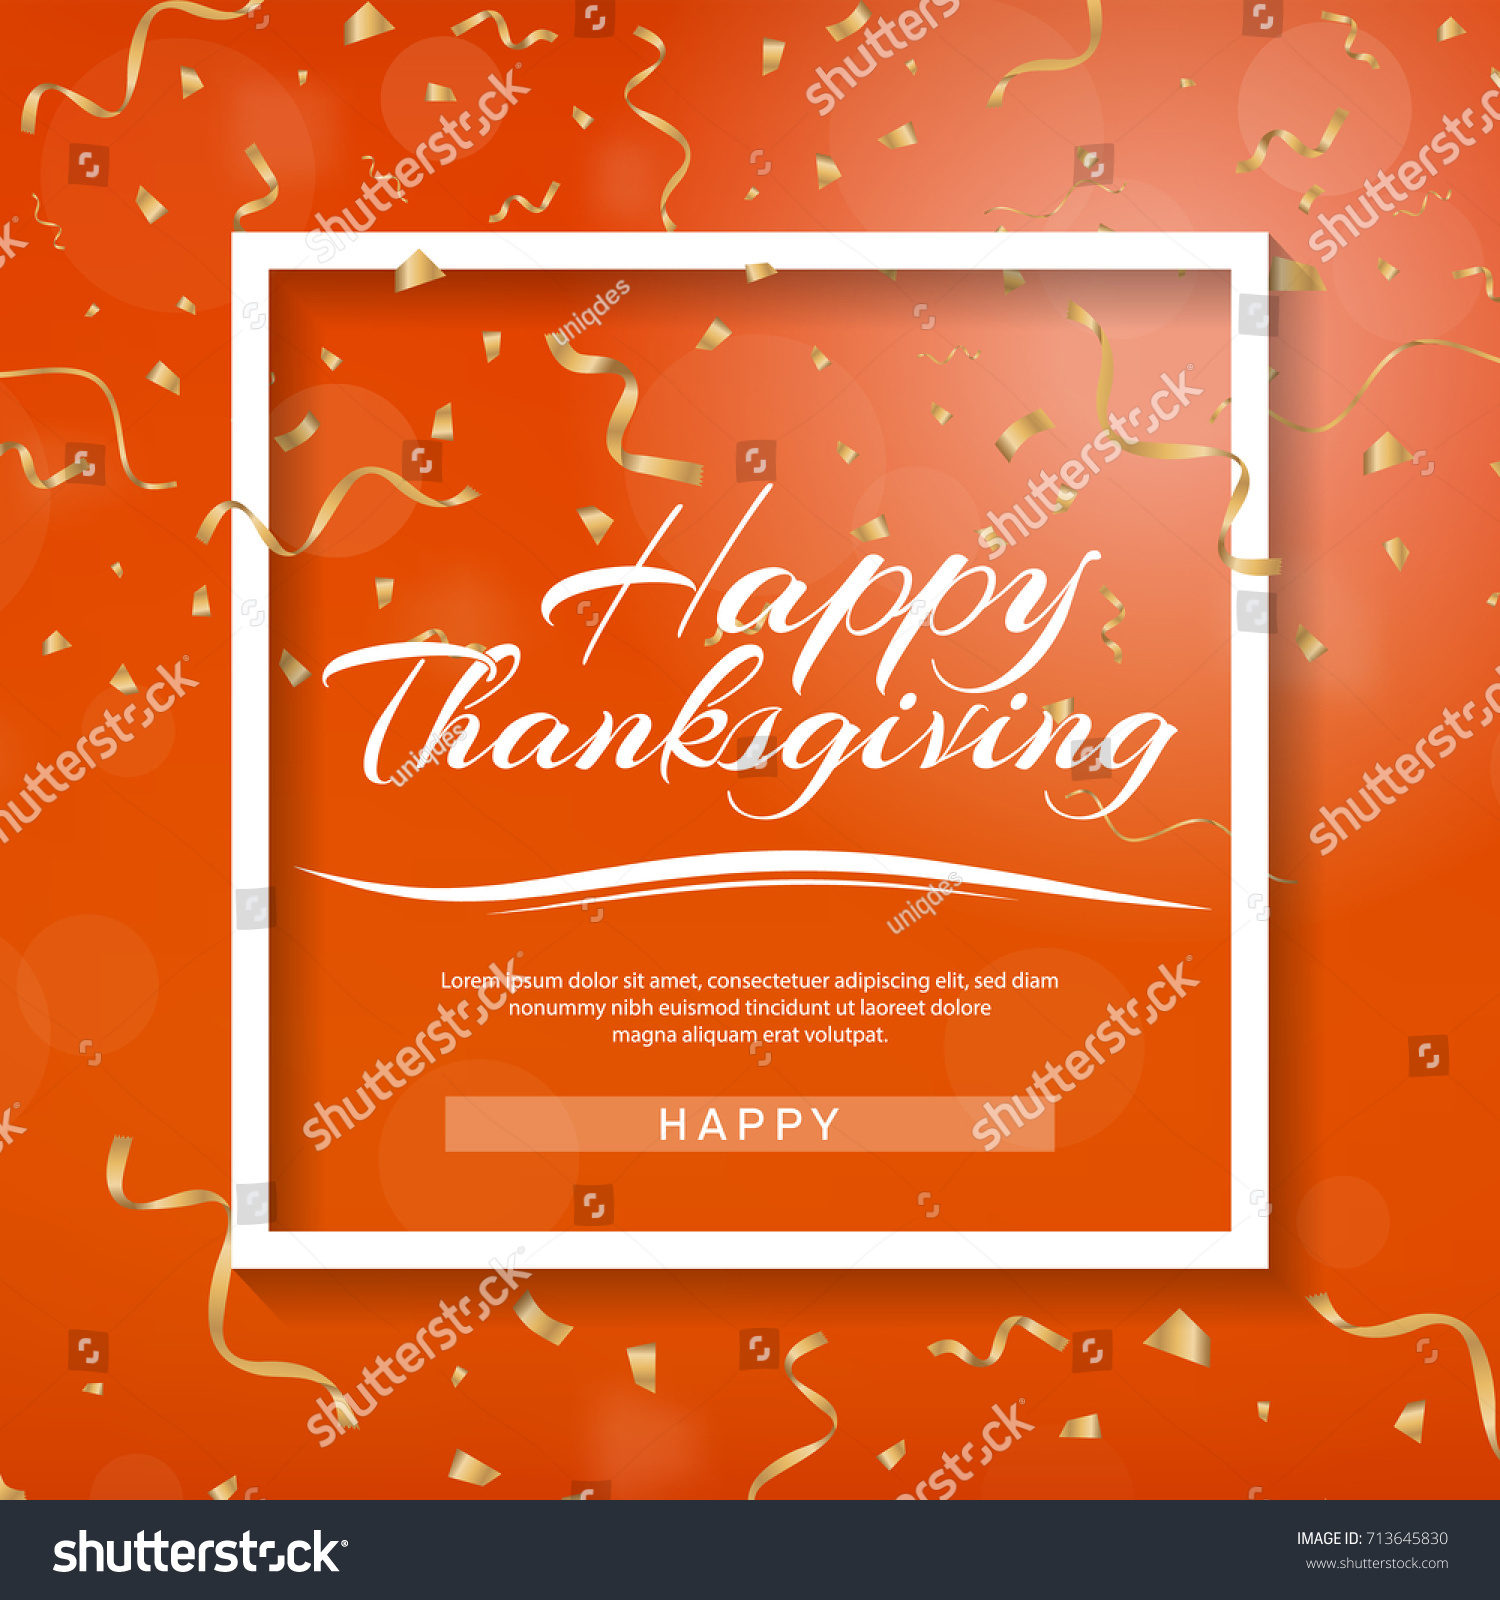 1500x1600 Stock Vector Happy Thanksgiving Banner Invitation Design For A